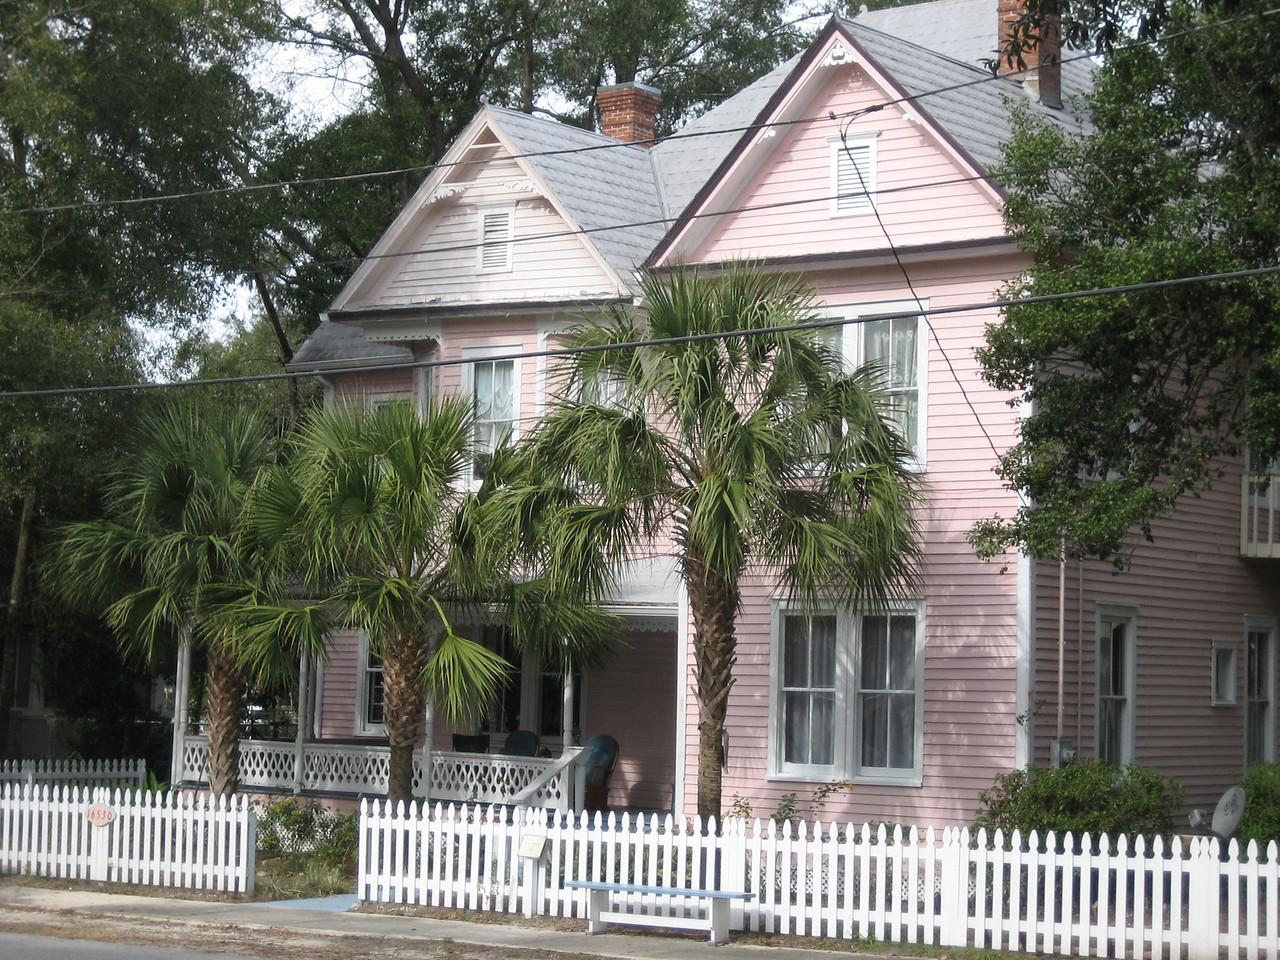 Historic home on River St<br /> PHOTO CREDIT: Sandra Friend / Florida Trail Association